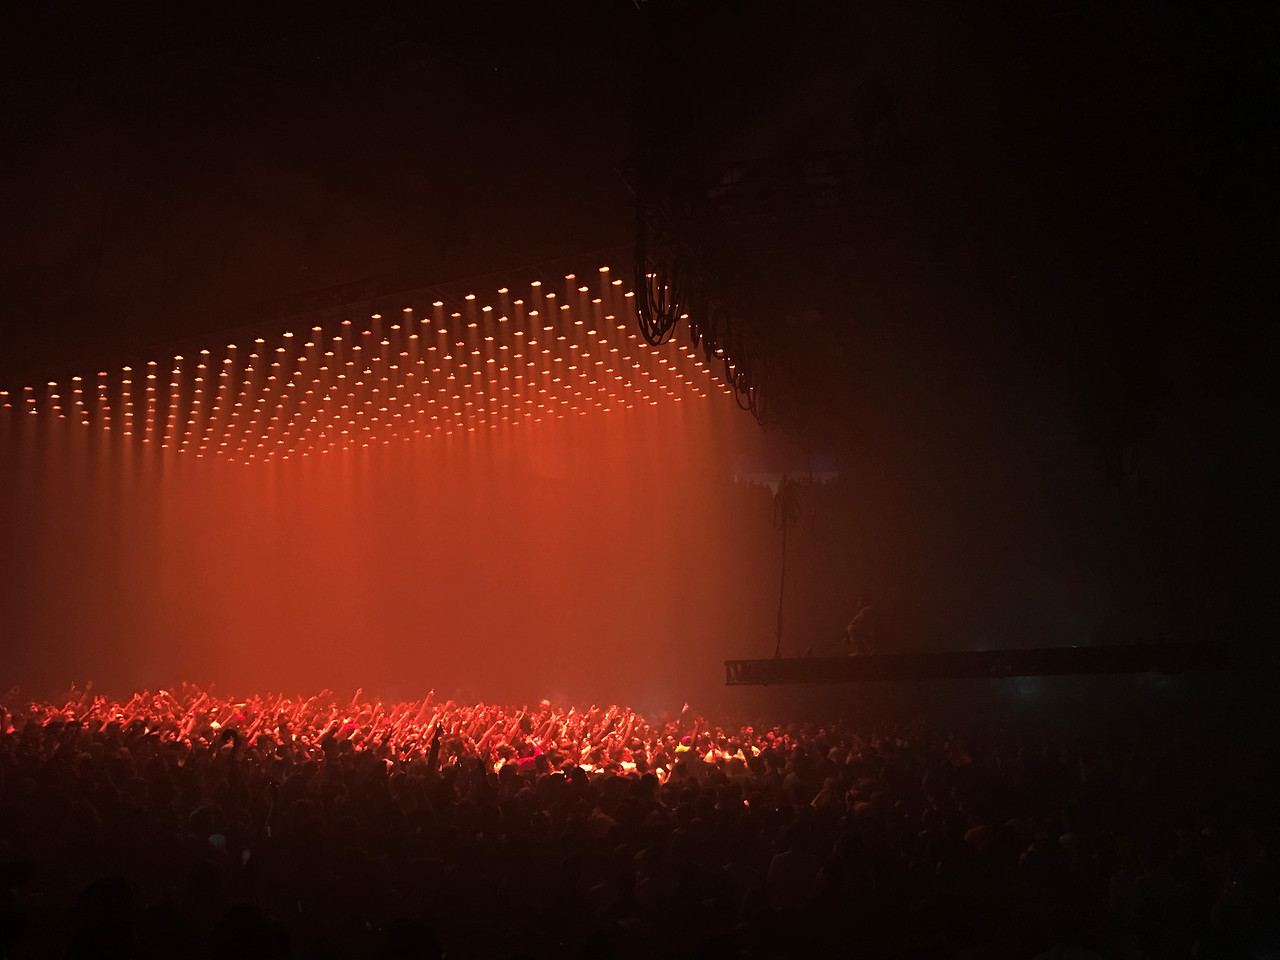 Kanye West overlooks the crowd on his floating stage - Chicago, IL